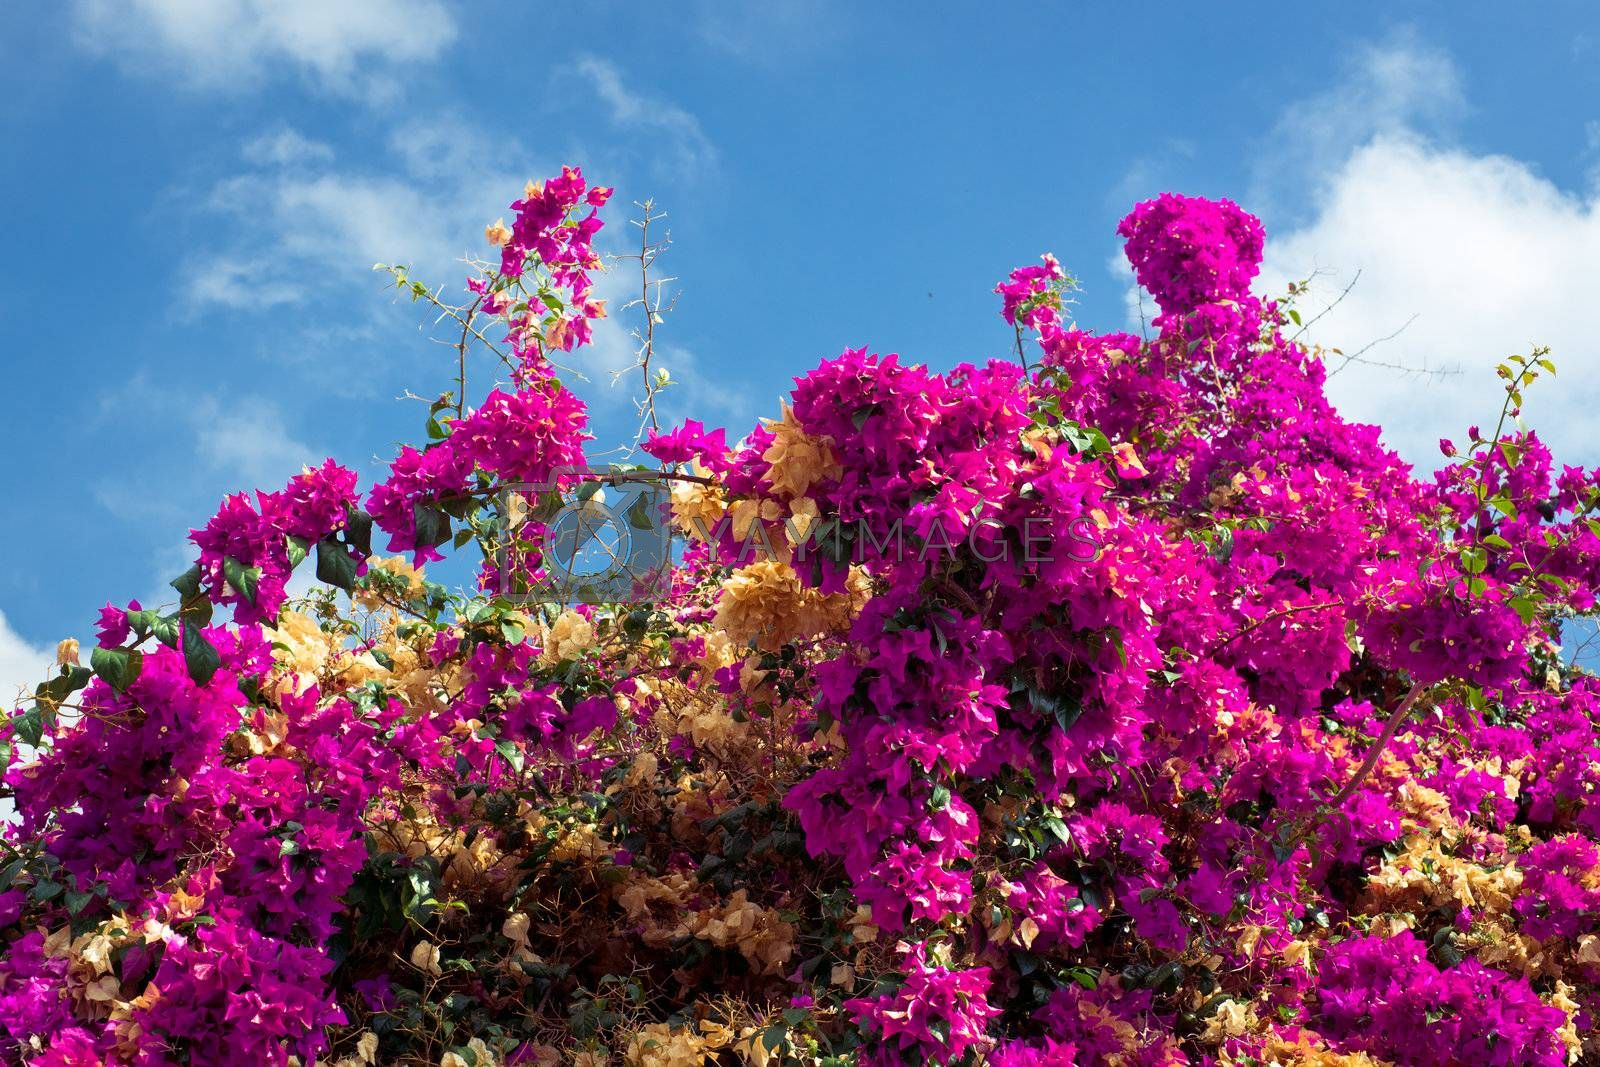 Blooming bush with magenta flowers on the blue sky background